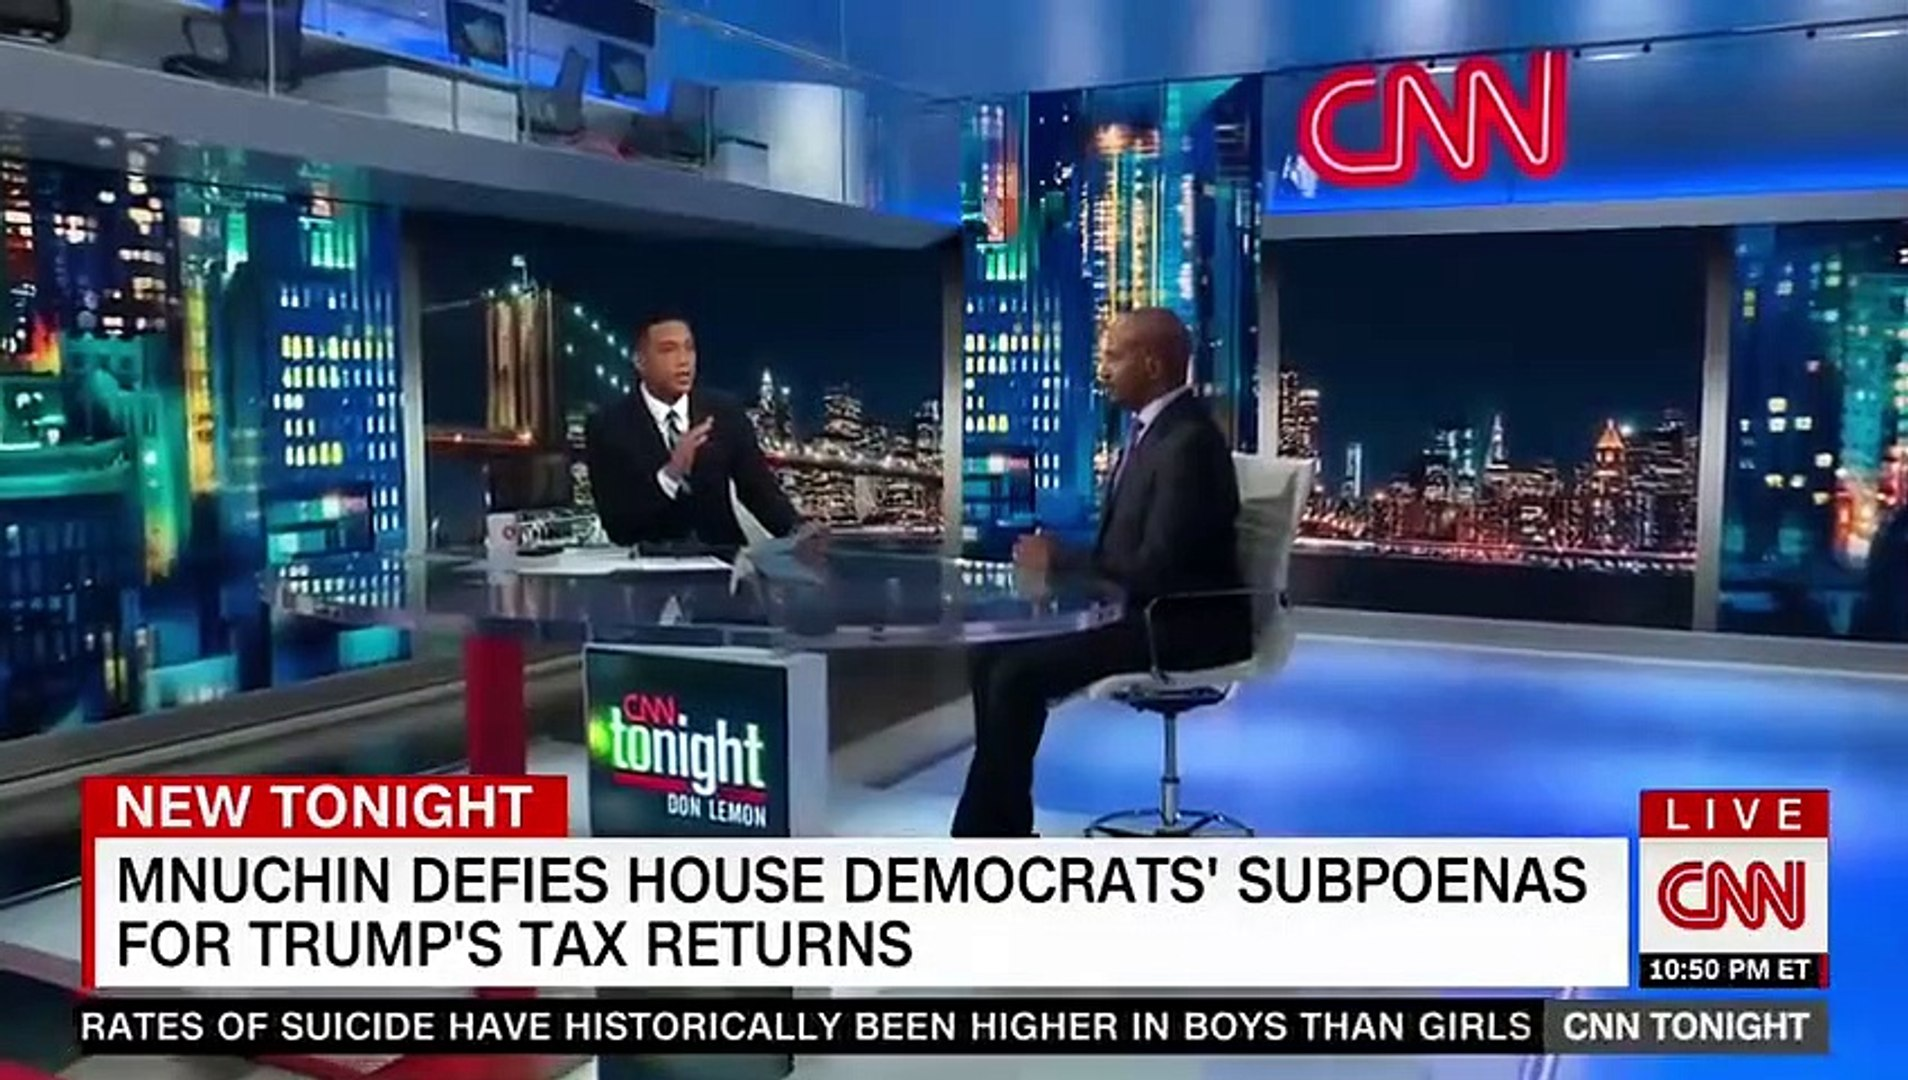 CNN Tonight with Don Lemon 11PM 5-17-19 - Trump Breaking News Today May 17, 2019